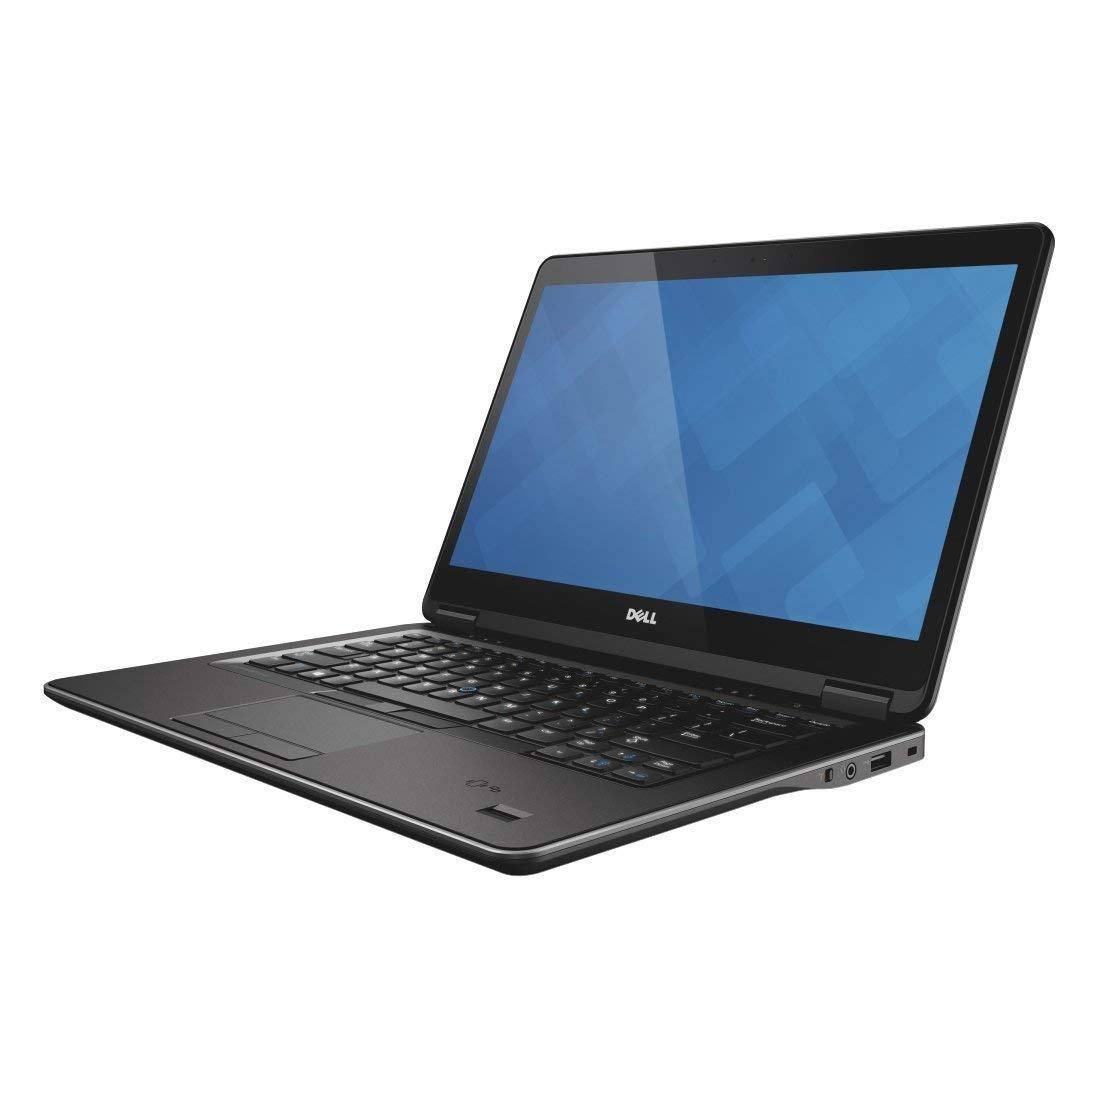 Dell Latitude E7440 14 FHD LED Ultrabook Intel Core i5 i5-4300U 1.90 GHz 8GB 256GB SSD W10 REFURBISHED